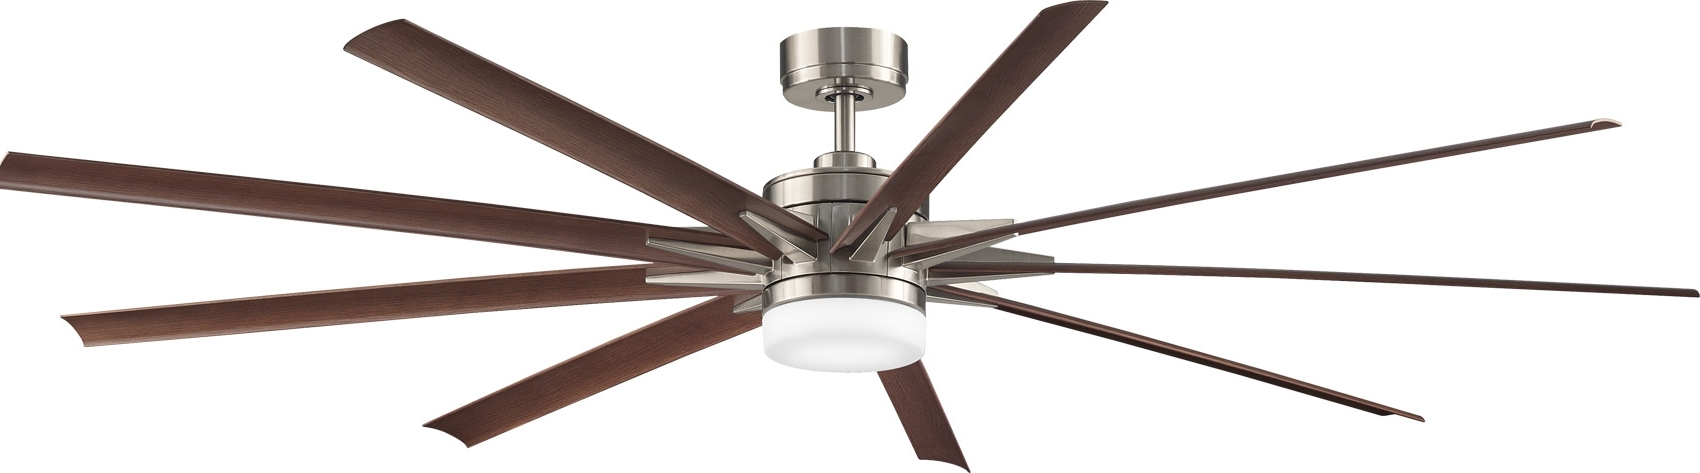 "Odyn 84"" Large Ceiling Fanfanimation Within Famous High Volume Outdoor Ceiling Fans (View 13 of 20)"